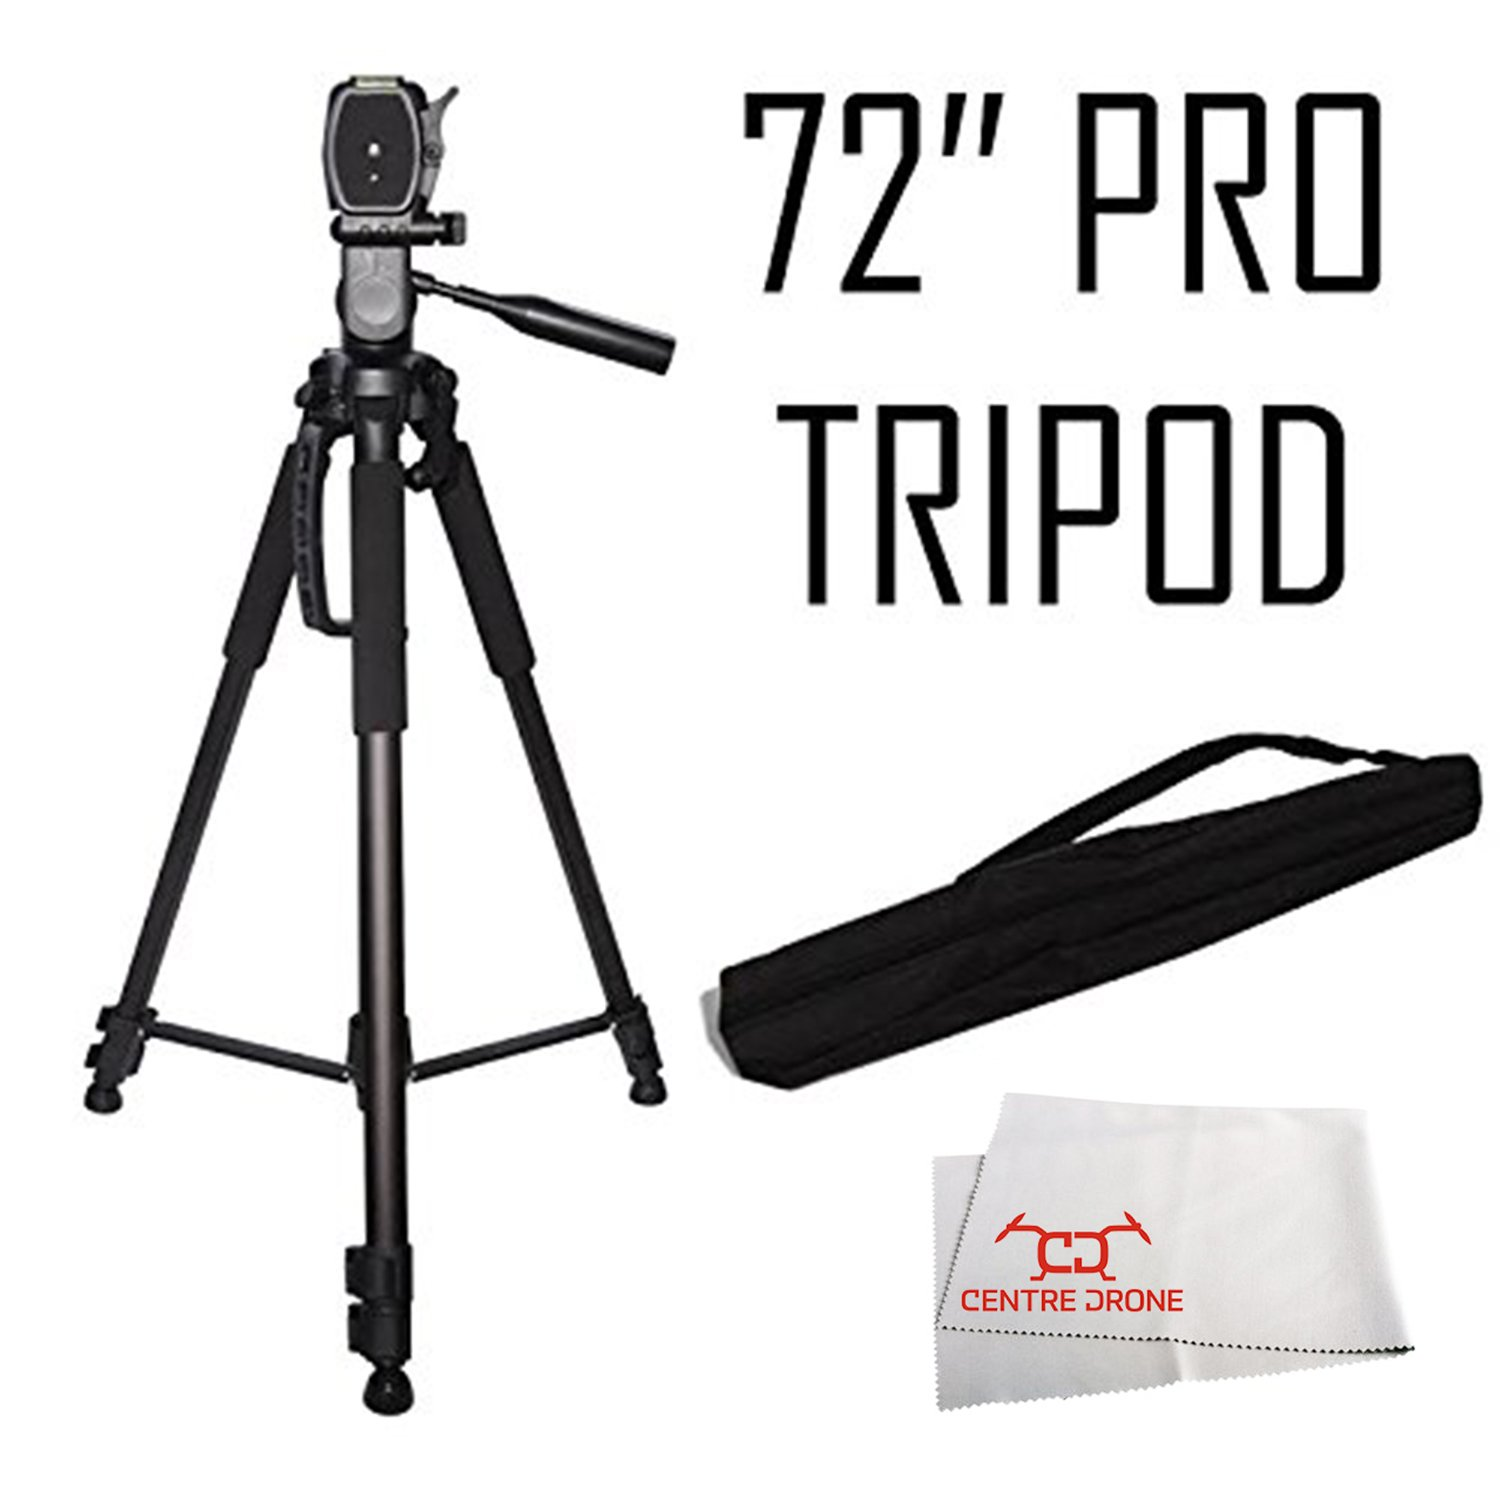 Professional 72-inch Tripod 3-way Panhead Tilt Motion with Built In Bubble Leveling for Nikon Df, D5300, D3300, D3400, D5200, D3200, D3X, D3S, D700, D300S, D7000, D90, D5100, D5000, D3100, D3000, D800, D800E D600 D610 D7100 Digital SLR Camera Digital Camer